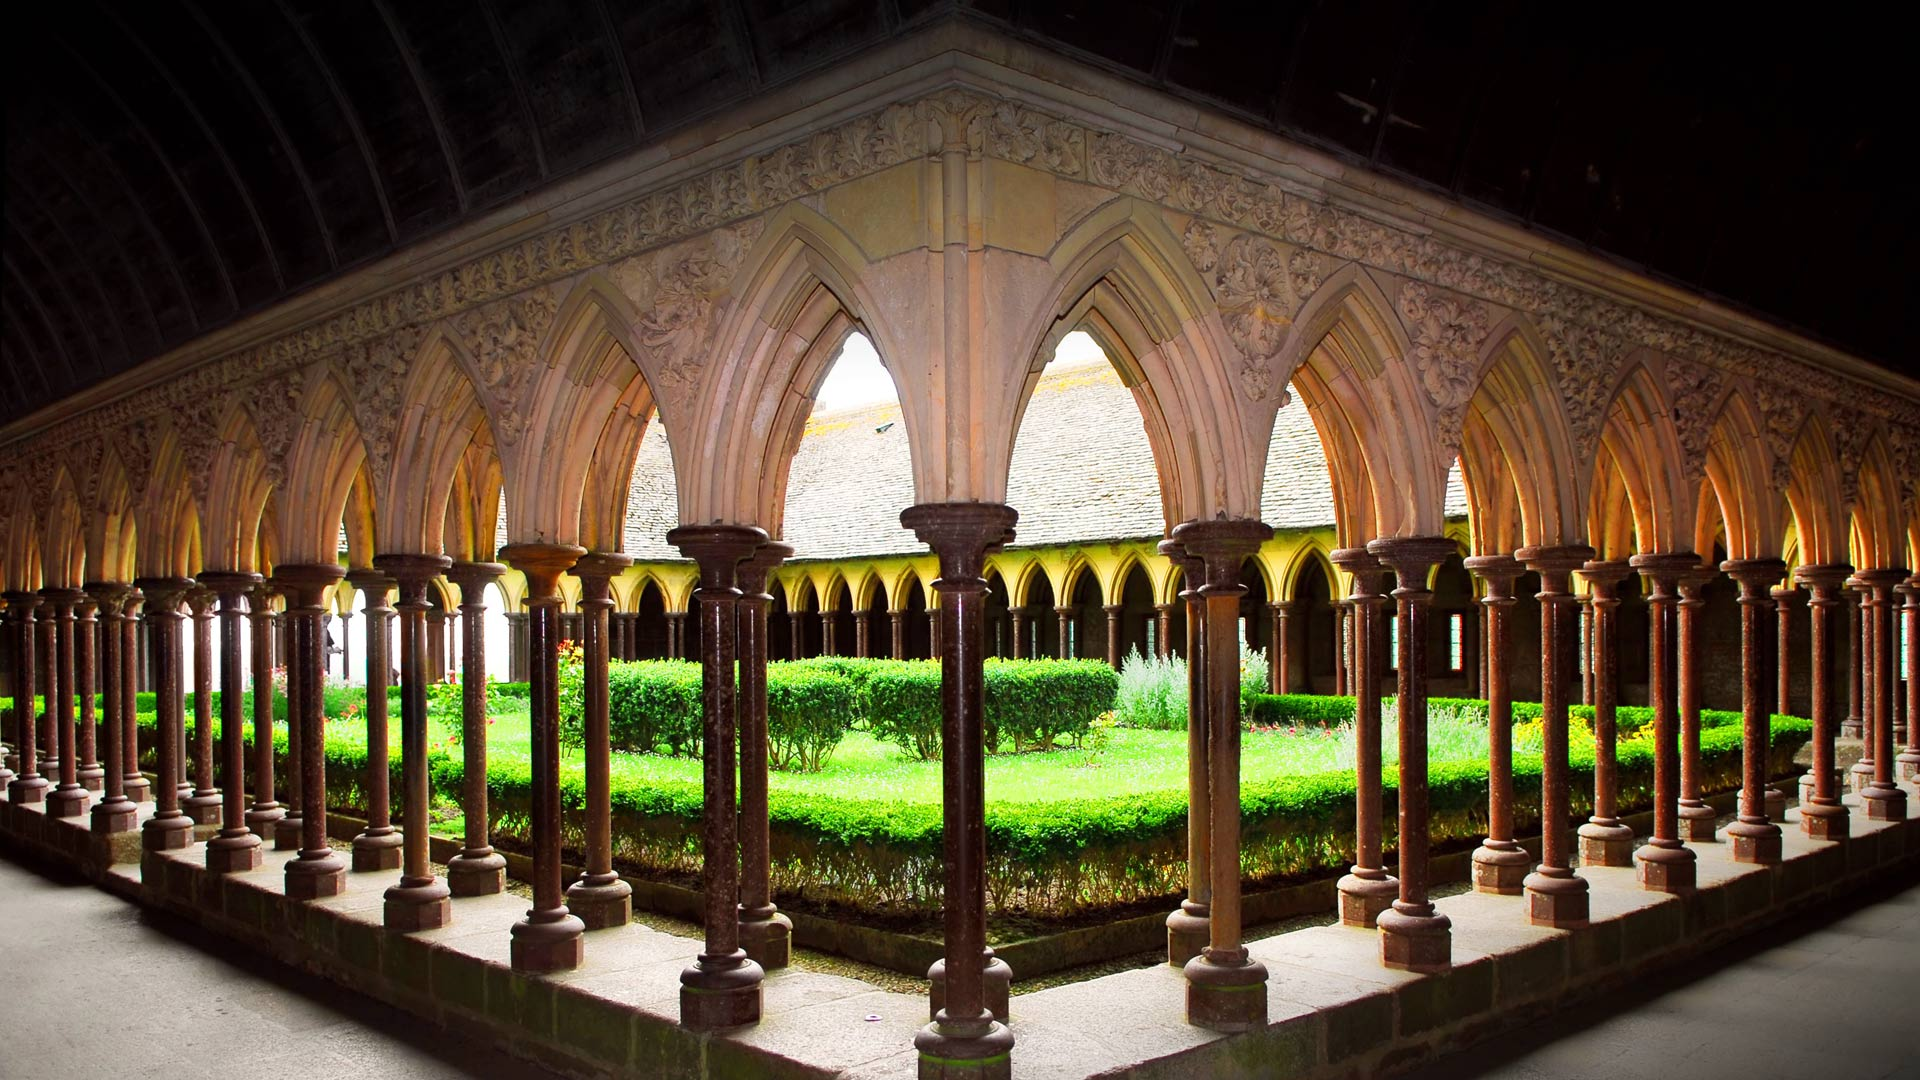 Cloister of Mont Saint-Michel Abbey, France (© Monkey Business Images/Rex Features)